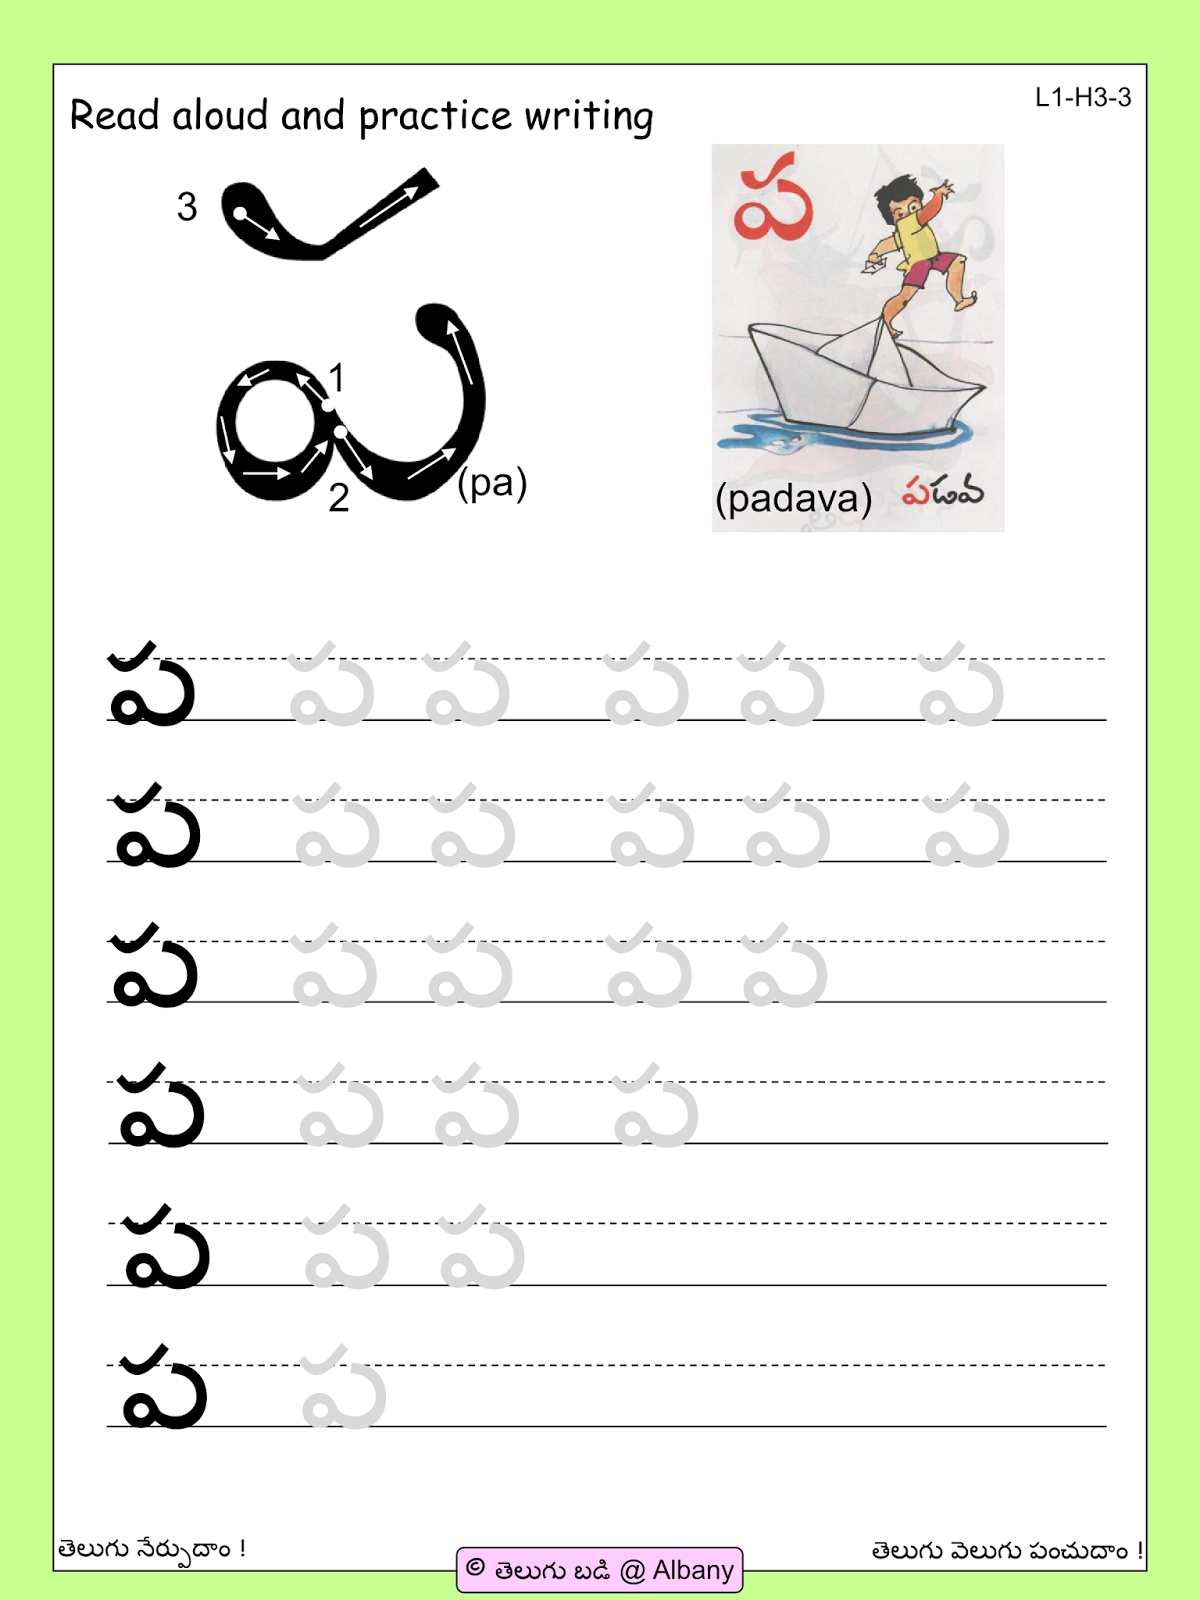 Telugu Picture Reading Video Lesson Panasa (పనస) with Tracing Telugu Letters Worksheets